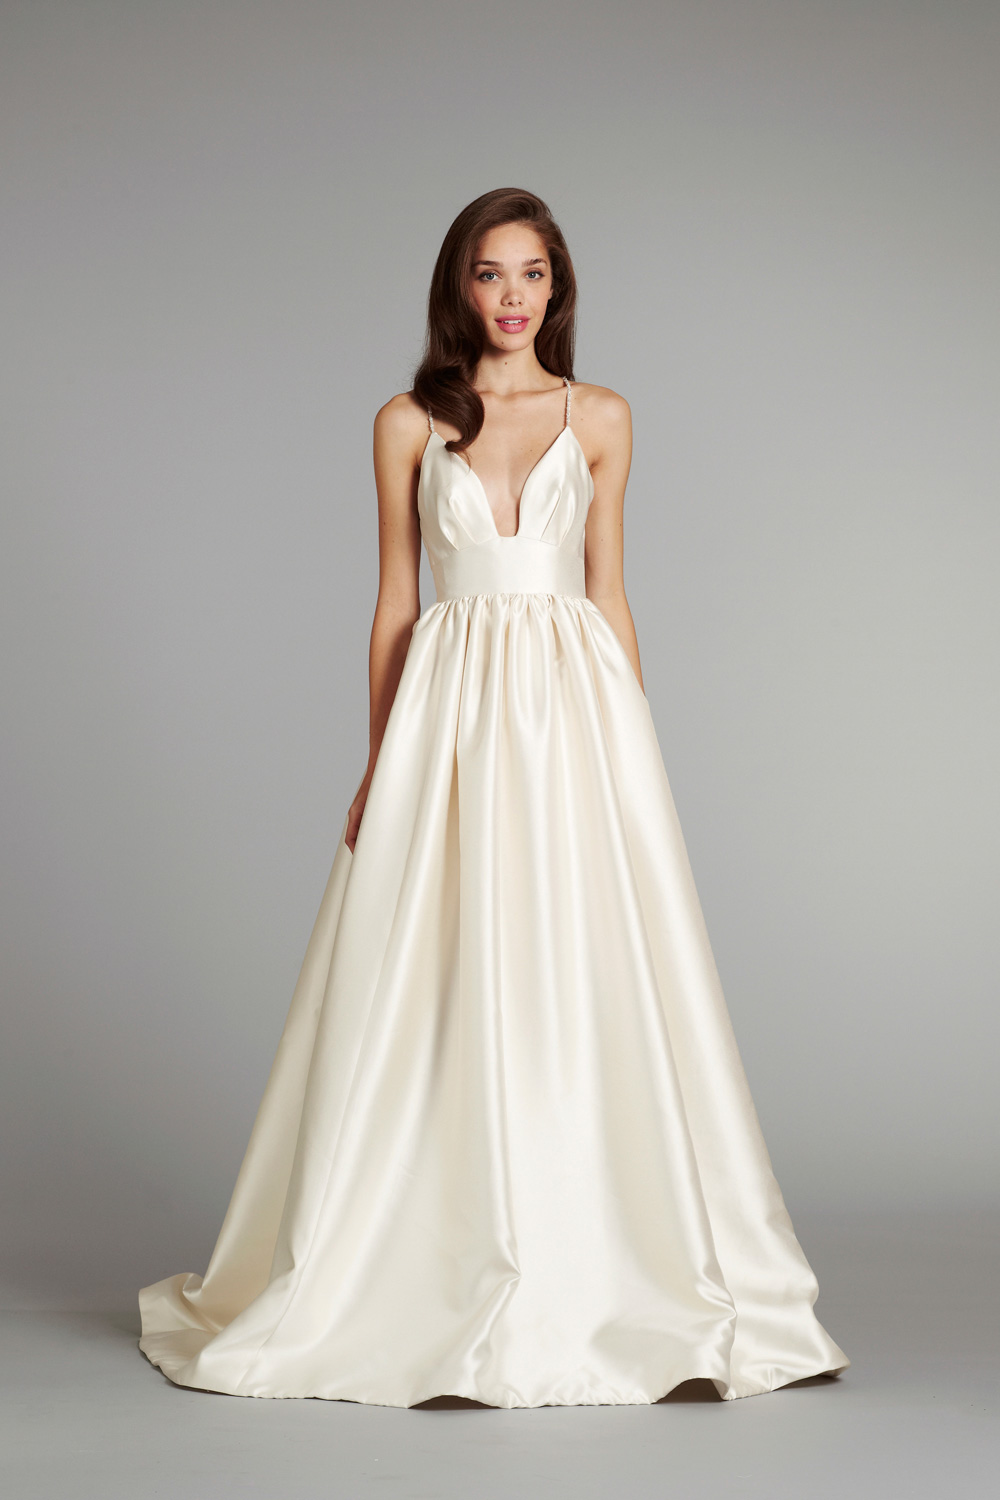 Bridal gown wedding dress jlm hayley paige blush fall 2012 for Hayley paige wedding dress